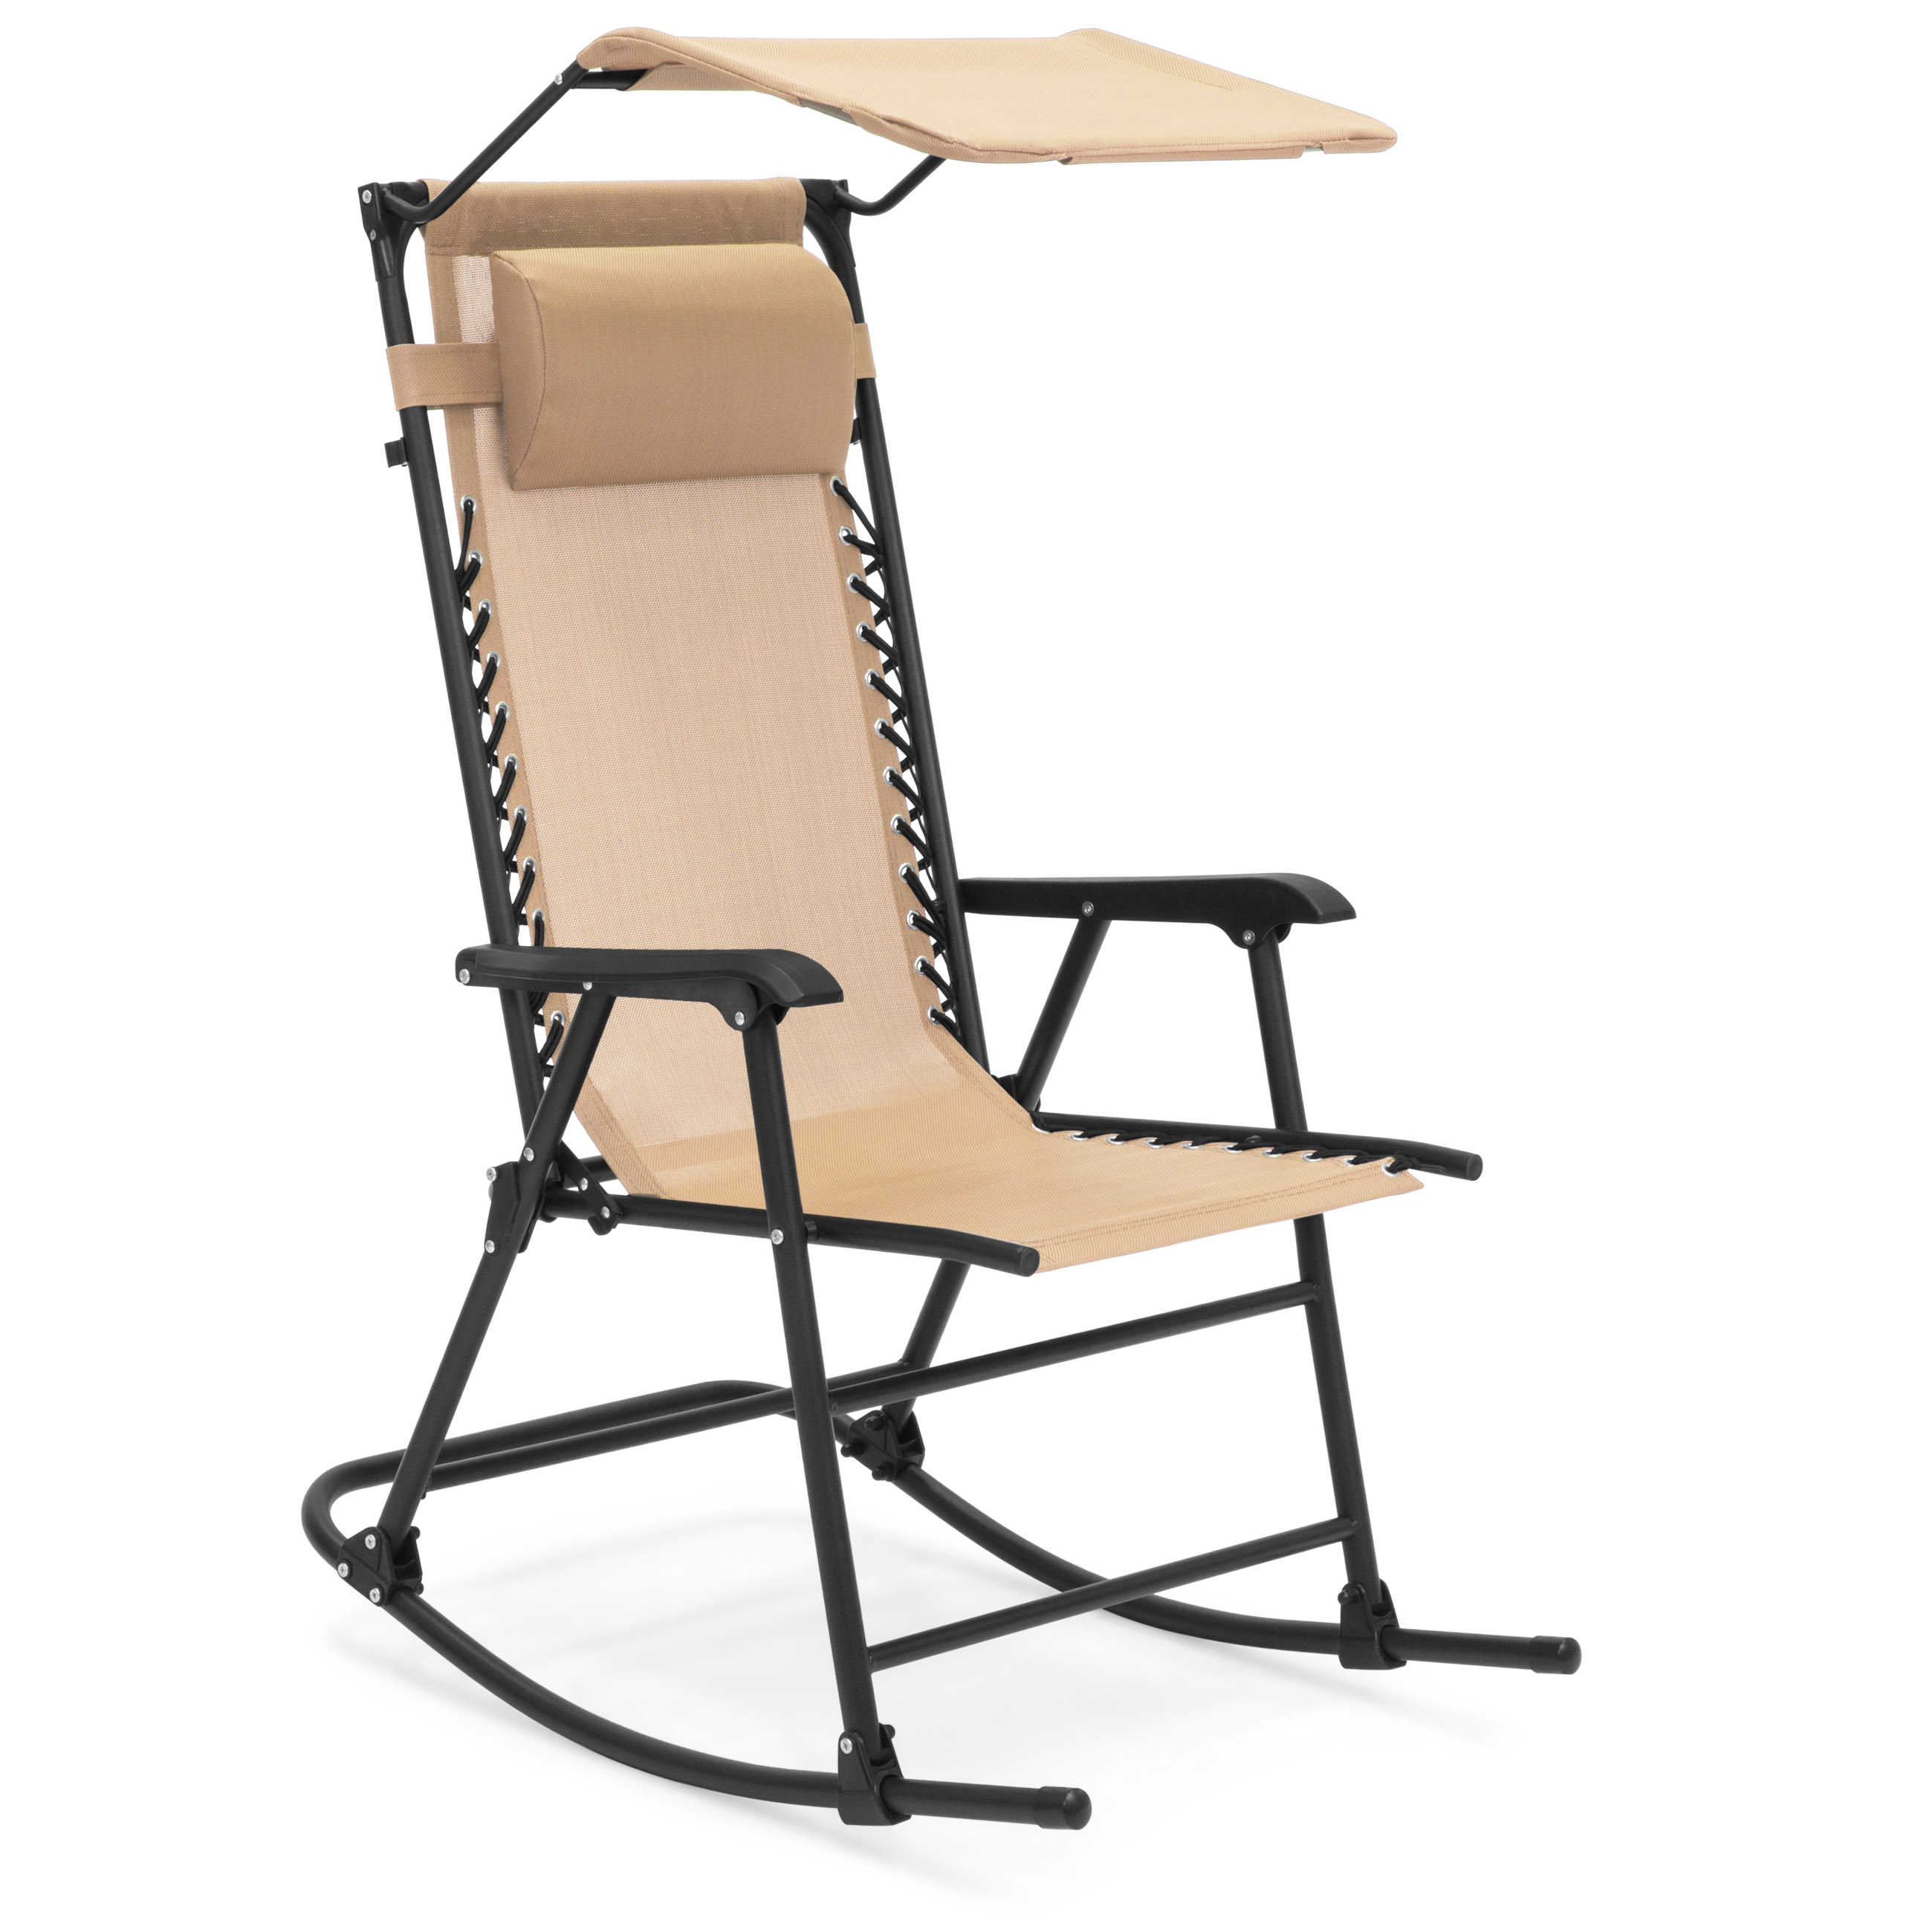 Best Choice Products Foldable Zero Gravity Rocking Patio Chair w/ Sunshade Canopy - Tan